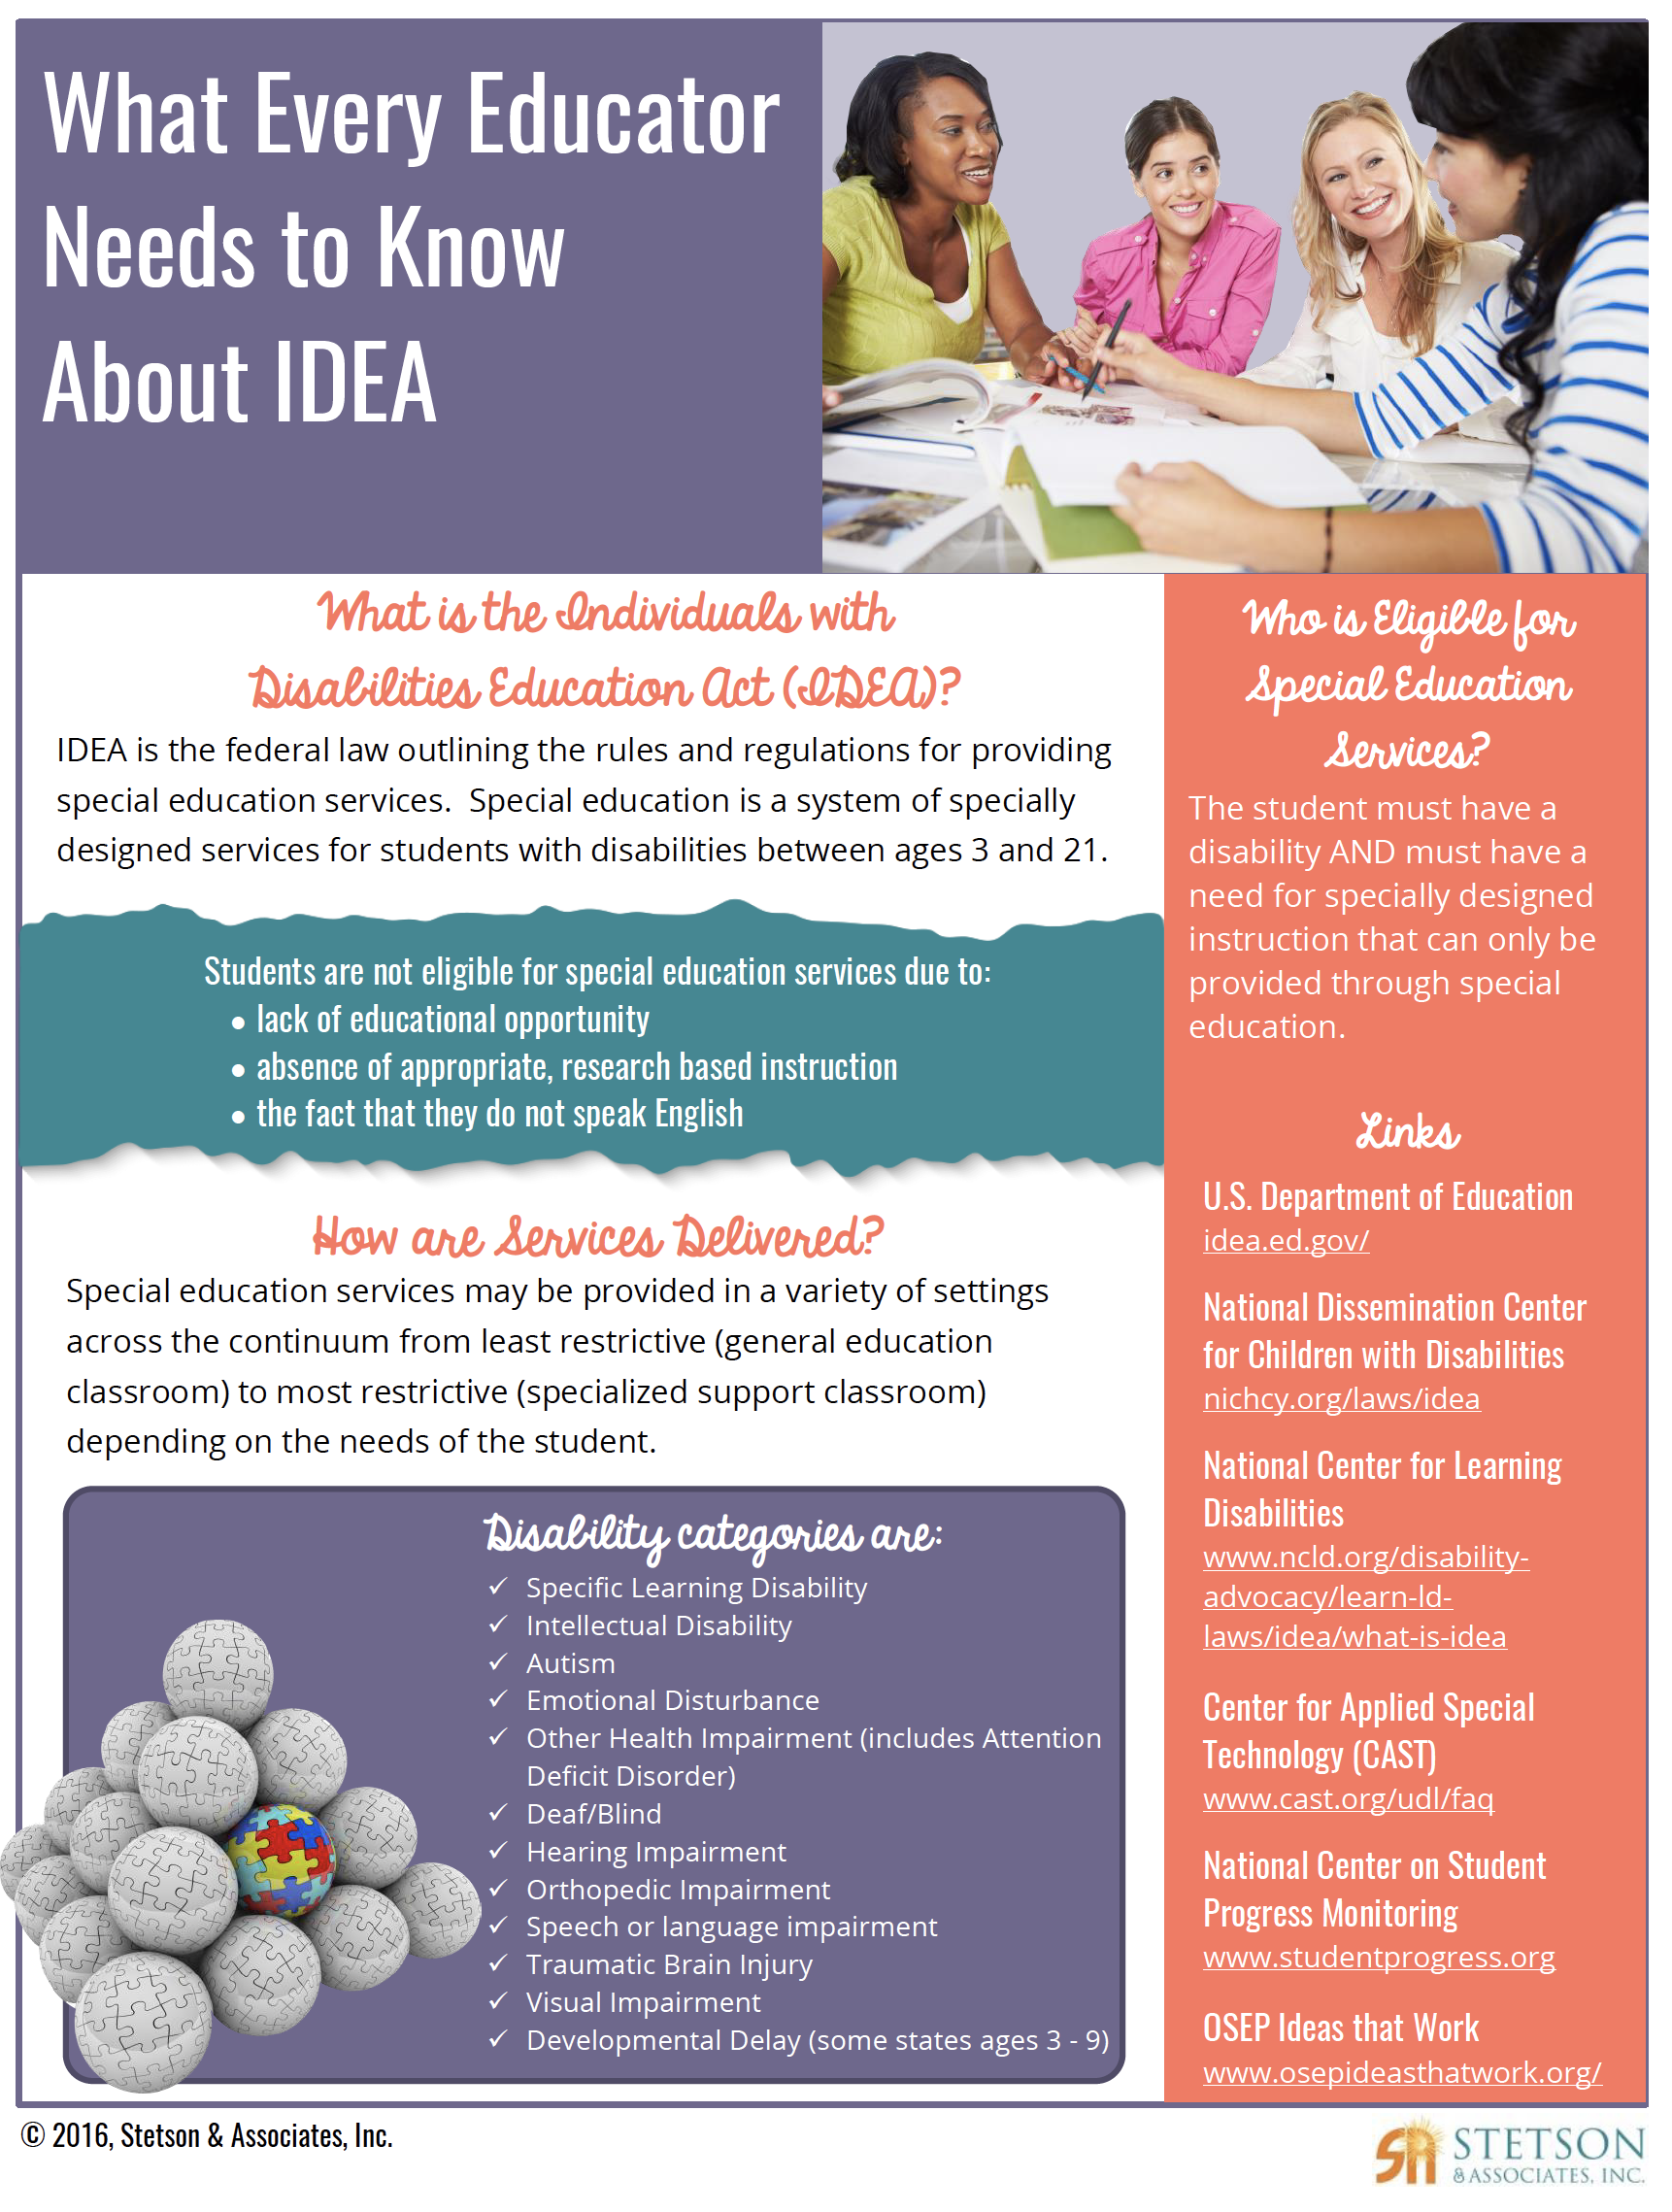 What Every Educator Needs to Know About IDEA Information Card 00026